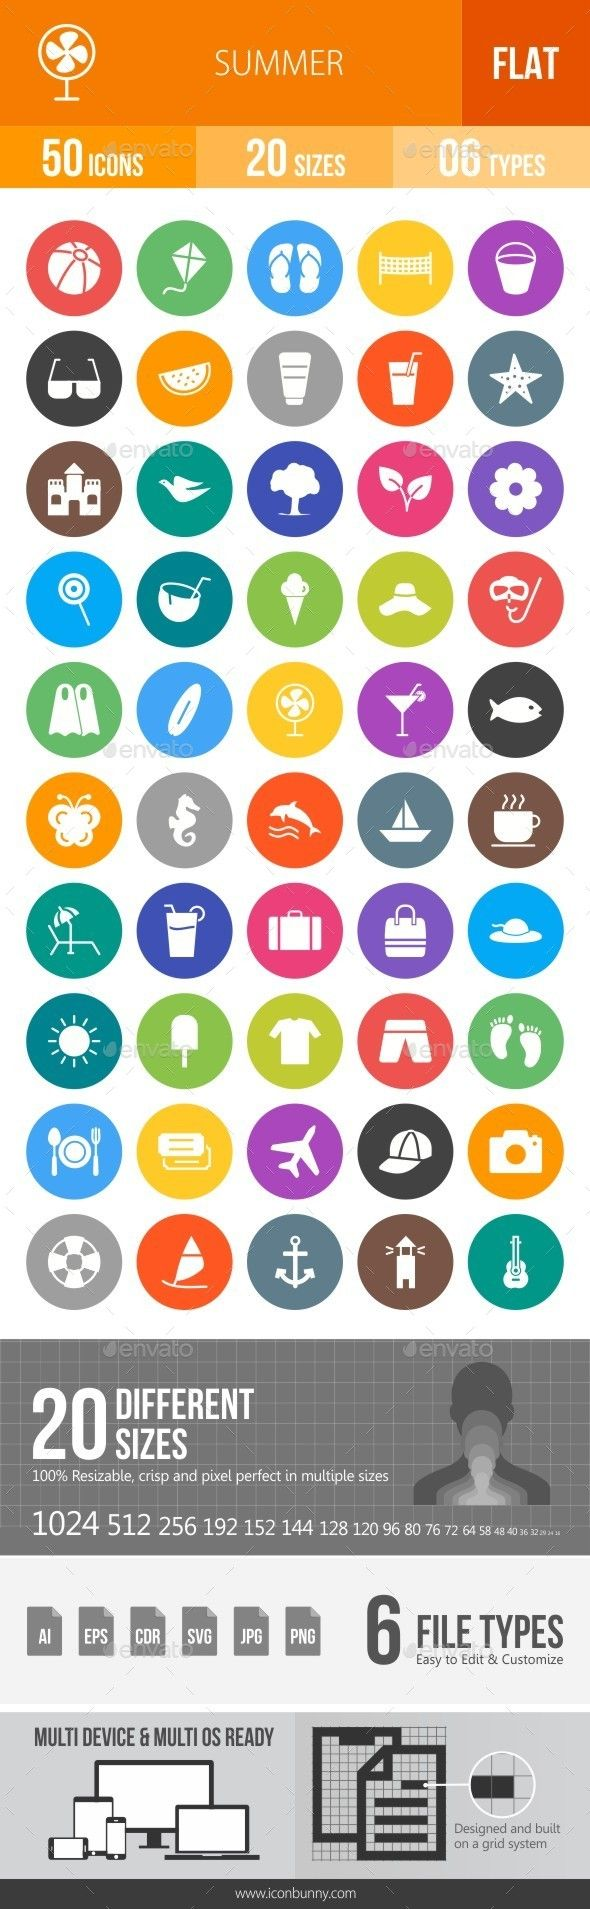 Summer Flat Round Icons